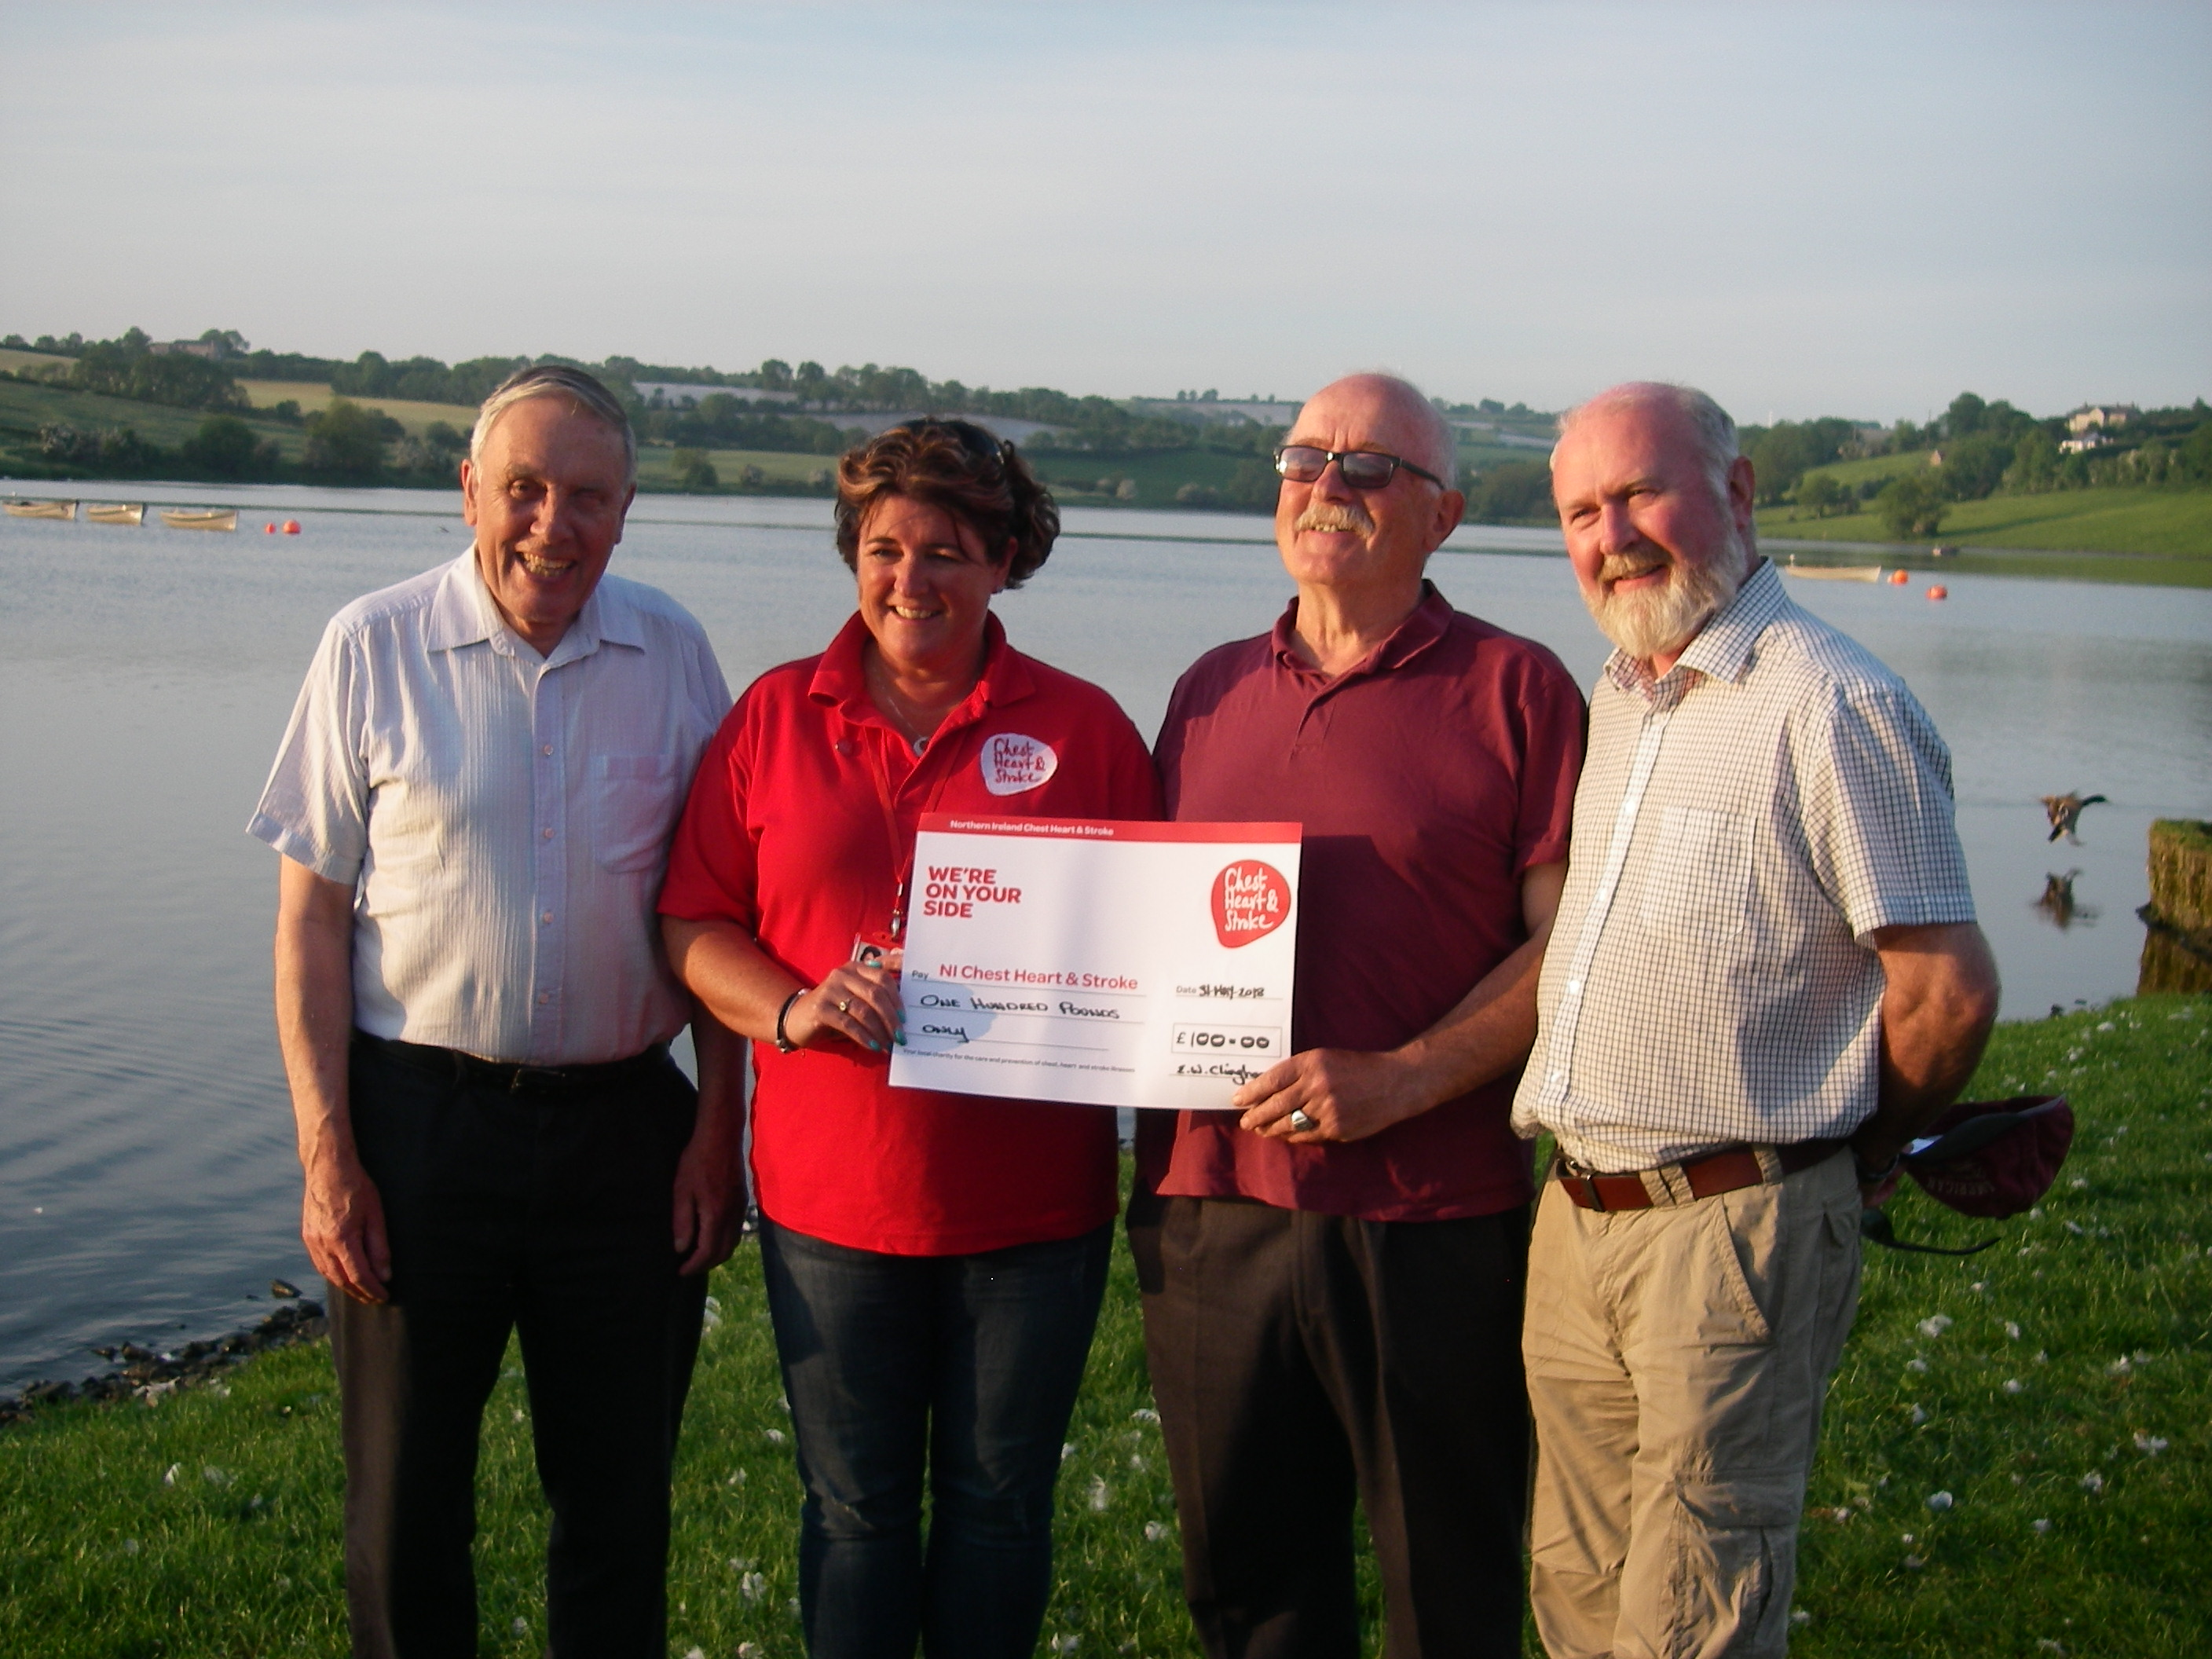 BAC Joe McCandless, President and Joe Curran Secretary watch on as Wilson Clinghan, representing the Club's competition anglers make a charity donation to Kim Colhoun, Chest, Heart and Stroke Association at Corbet Lough on 31 May 2018